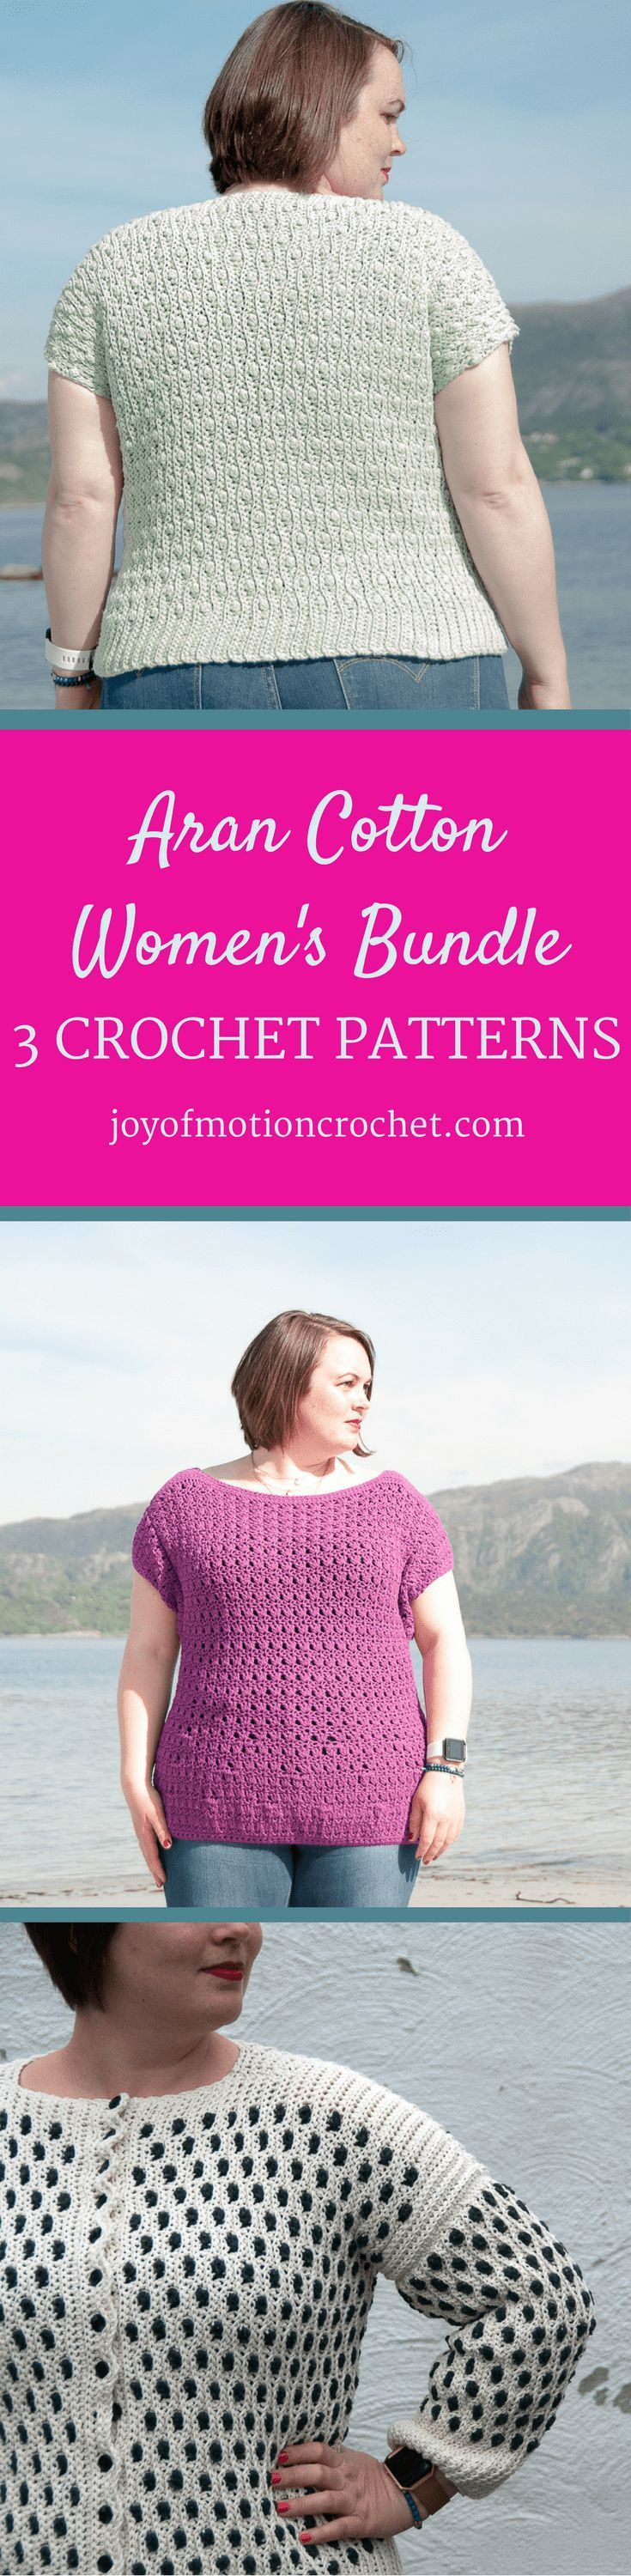 Want to make a few women's crochet projects? These are just perfect for that. Learn more about the crochet patterns here: